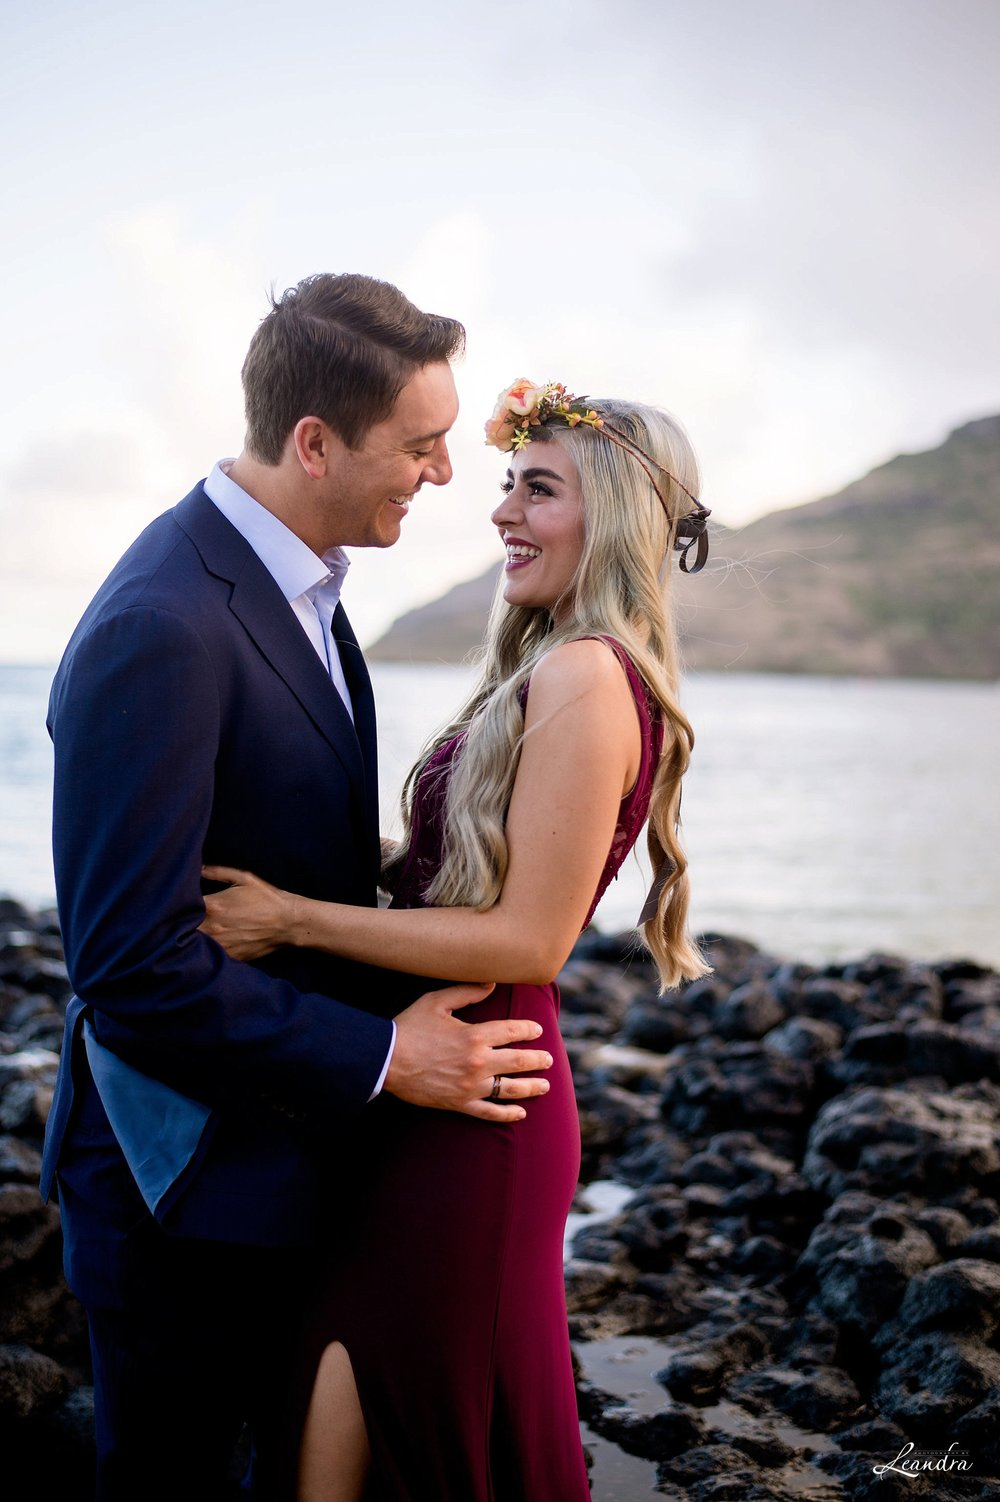 Kauai Destination Wedding Photographer | Photography by Leandra